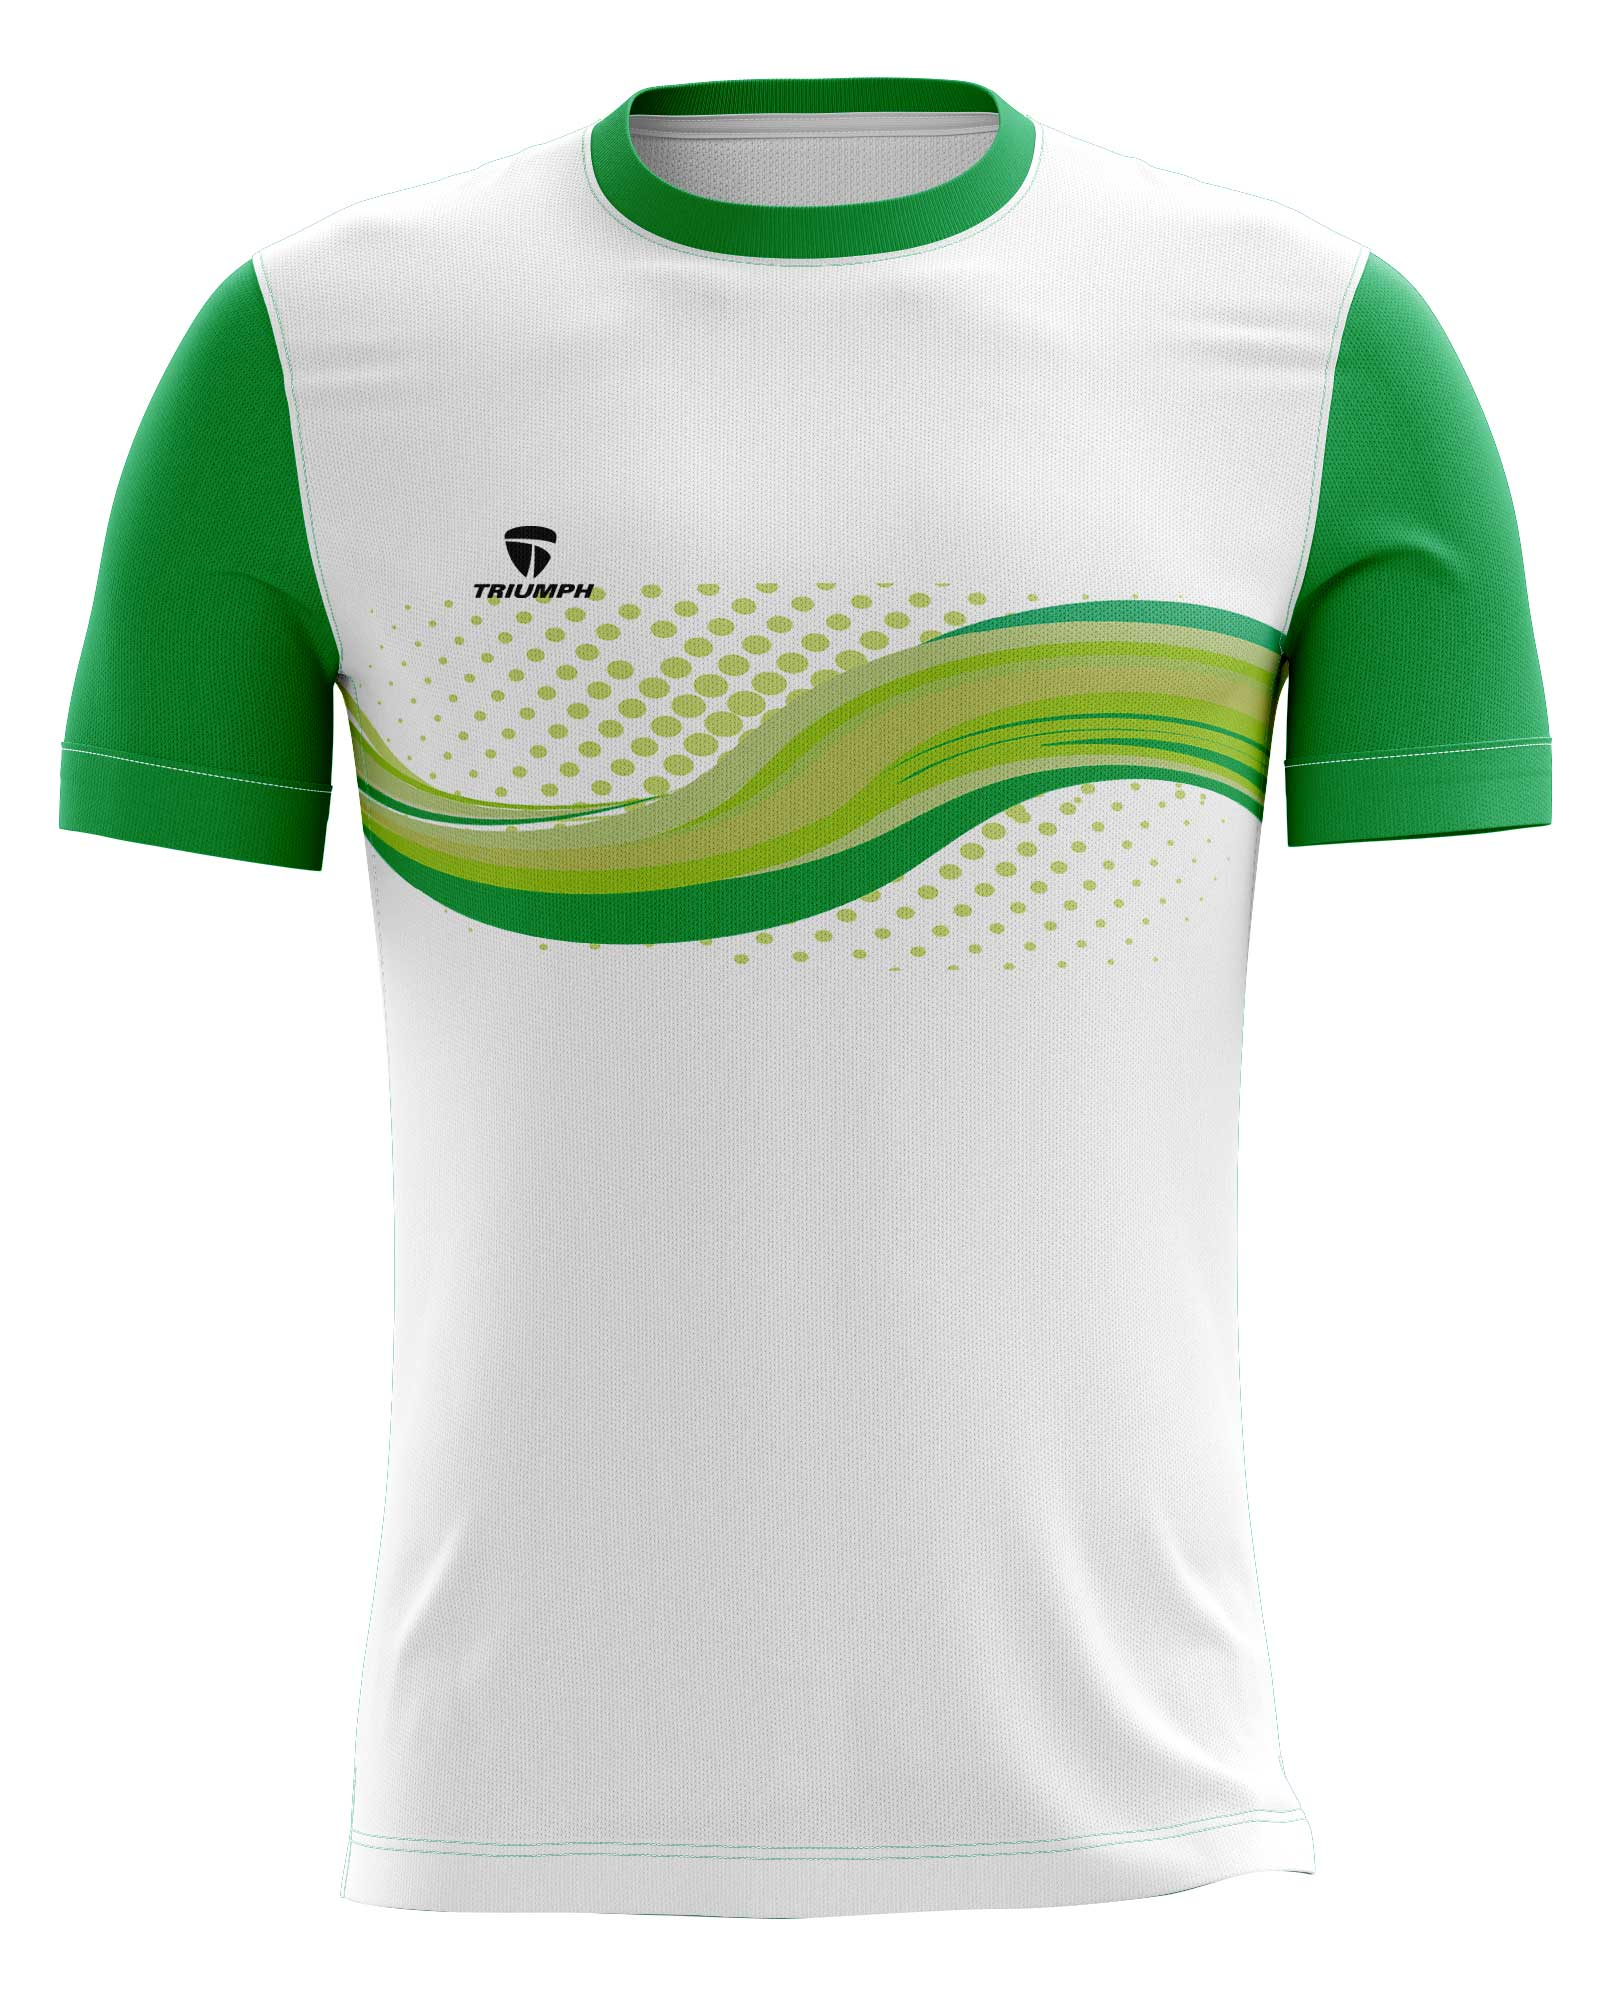 100% authentic aa48e 4dbc9 Triumph Sublimated Tennis Jersey